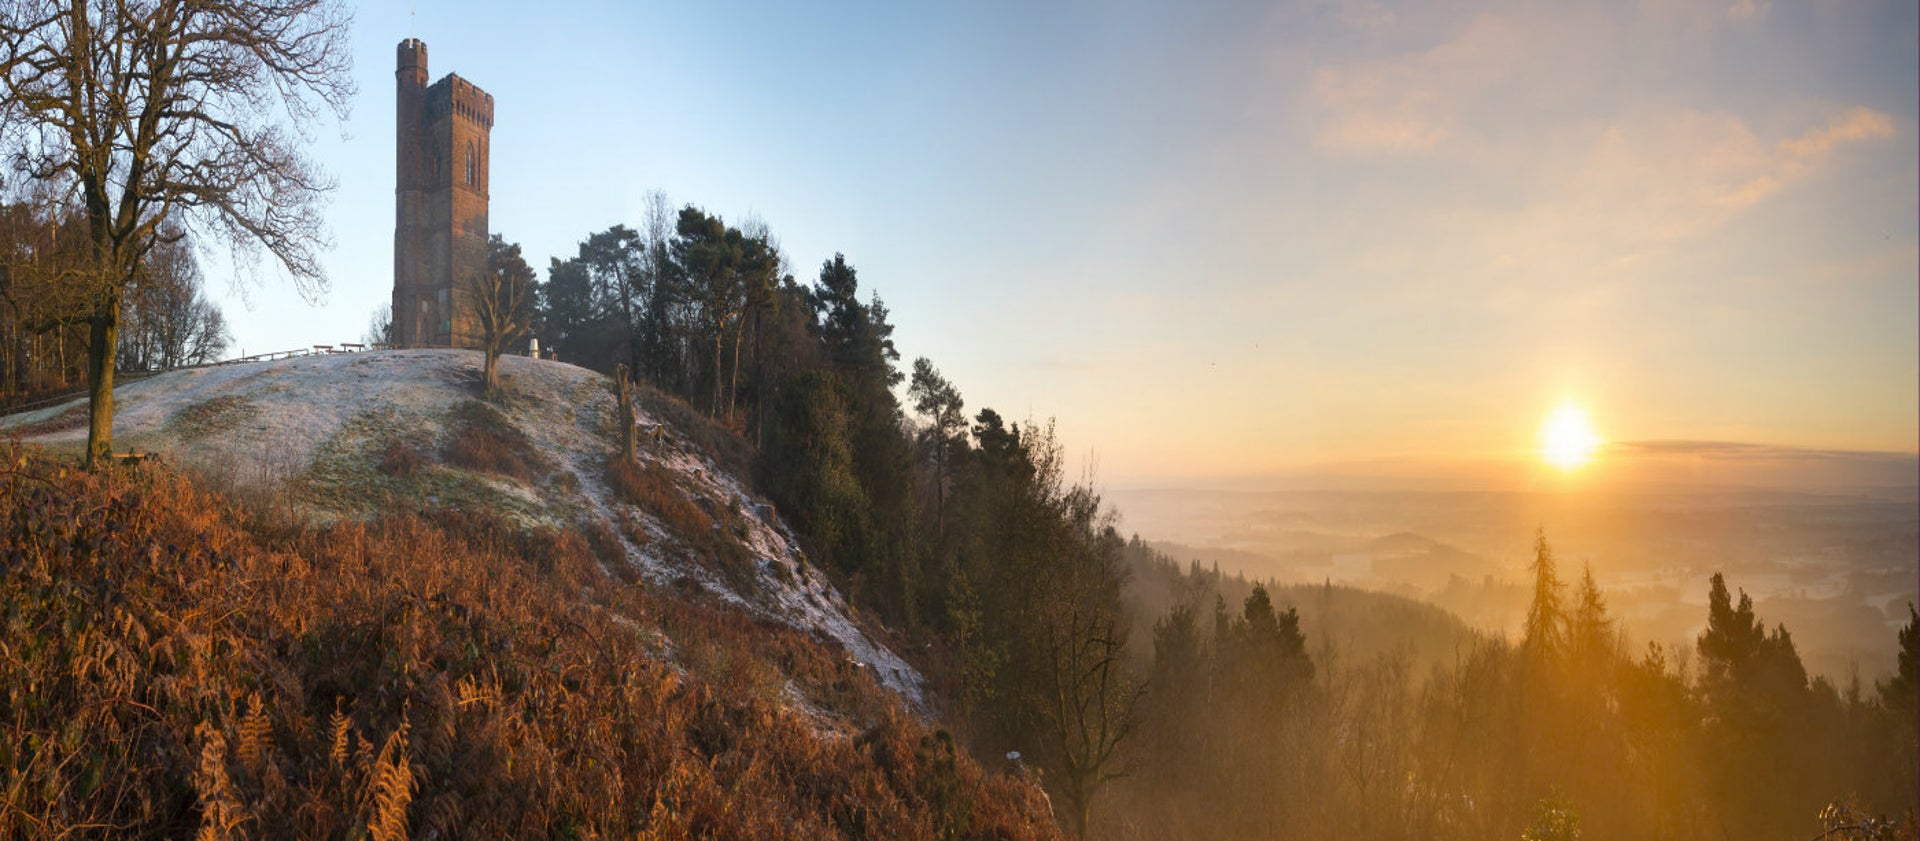 Art Butler Auto >> Leith Hill Tower and Countryside | National Trust